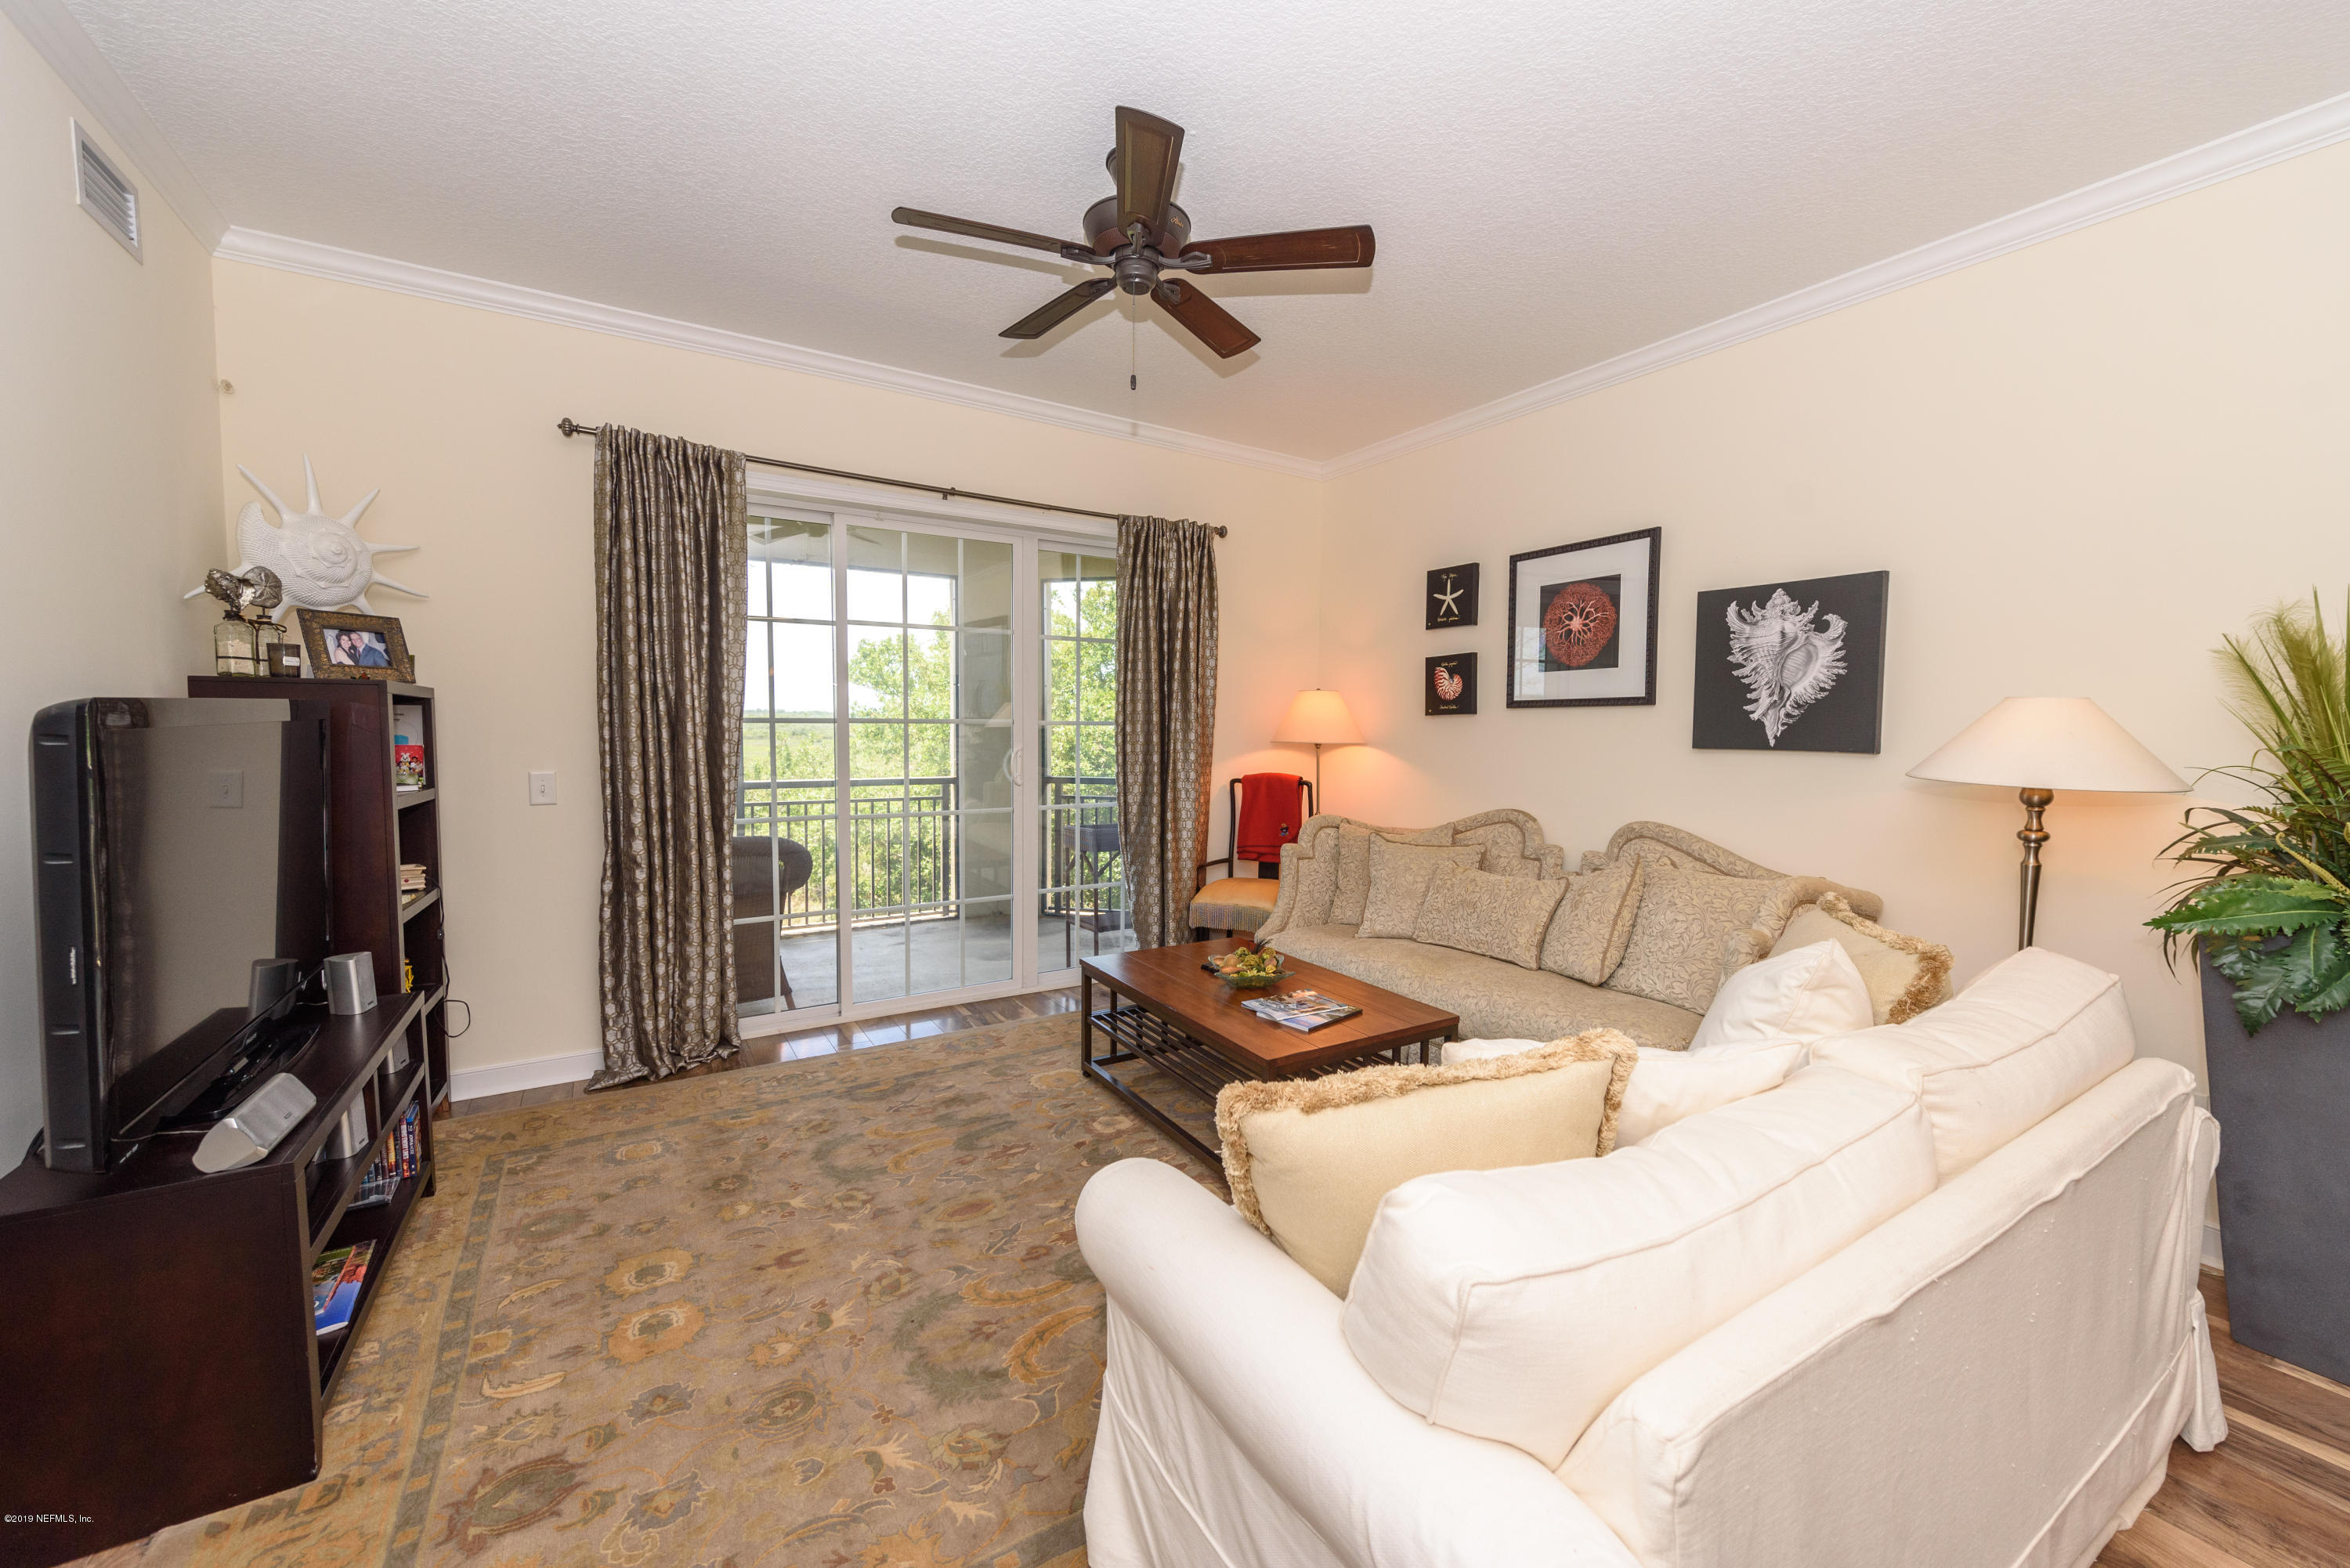 160 PANTANO CAY, ST AUGUSTINE, FLORIDA 32080, 3 Bedrooms Bedrooms, ,2 BathroomsBathrooms,Condo,For sale,PANTANO CAY,995015